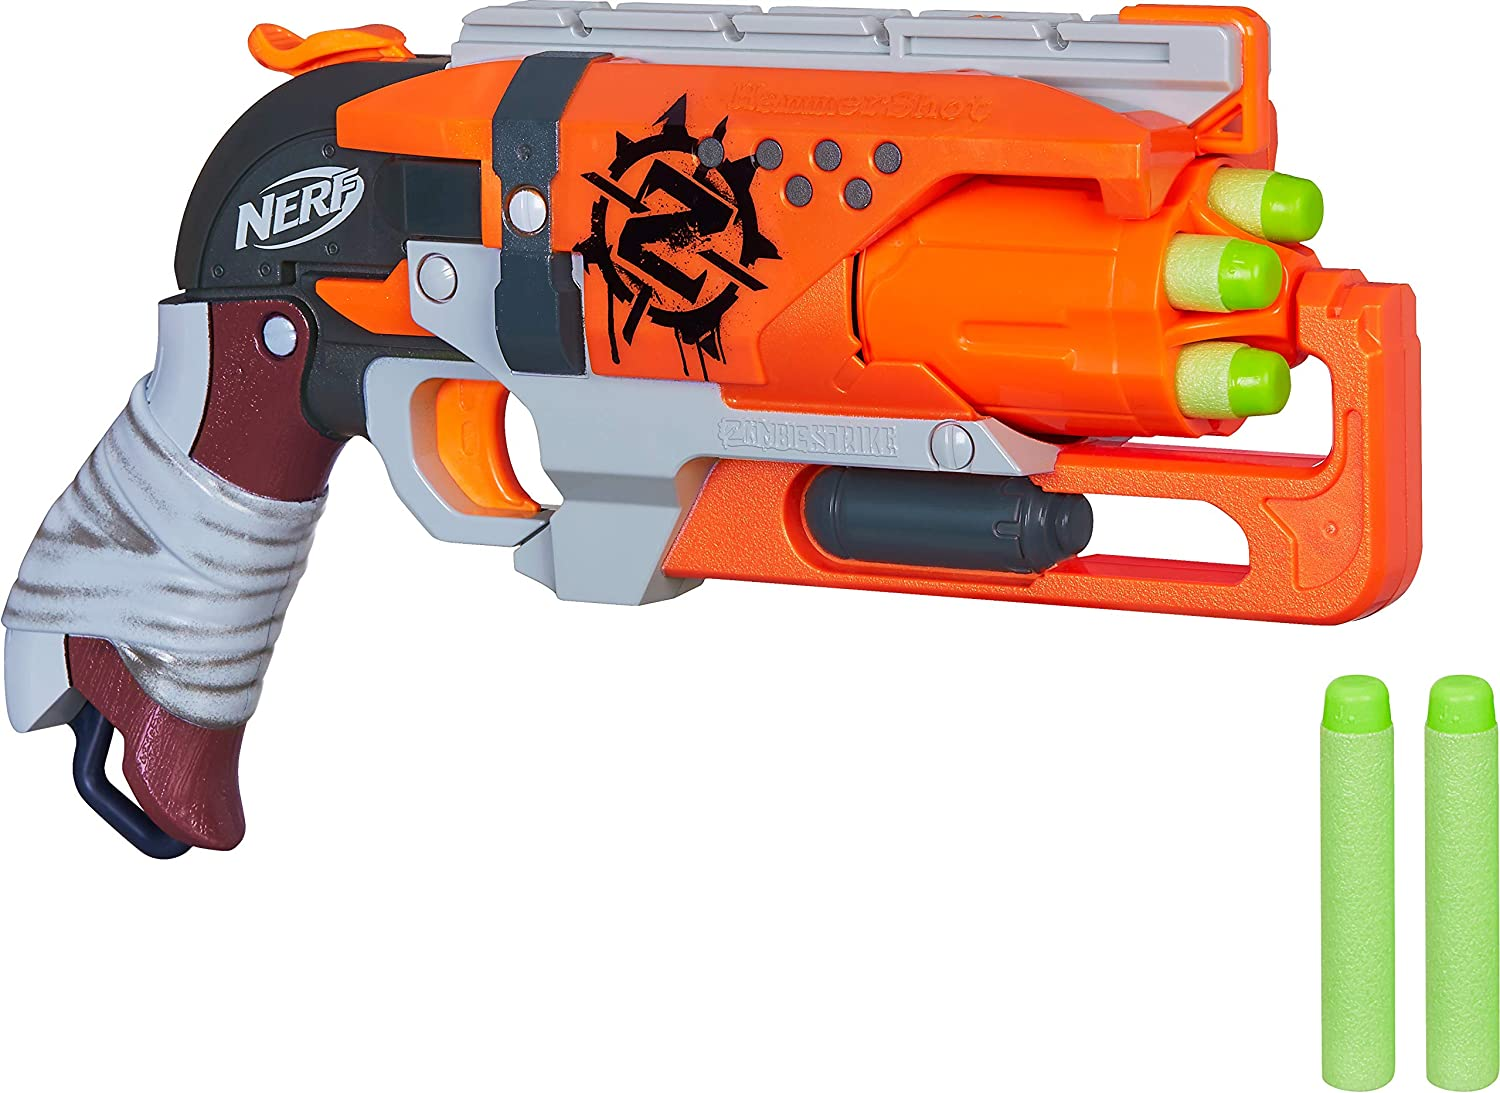 Top 10 Best Nerf Guns (2020 Reviews & Buying Guide) 1